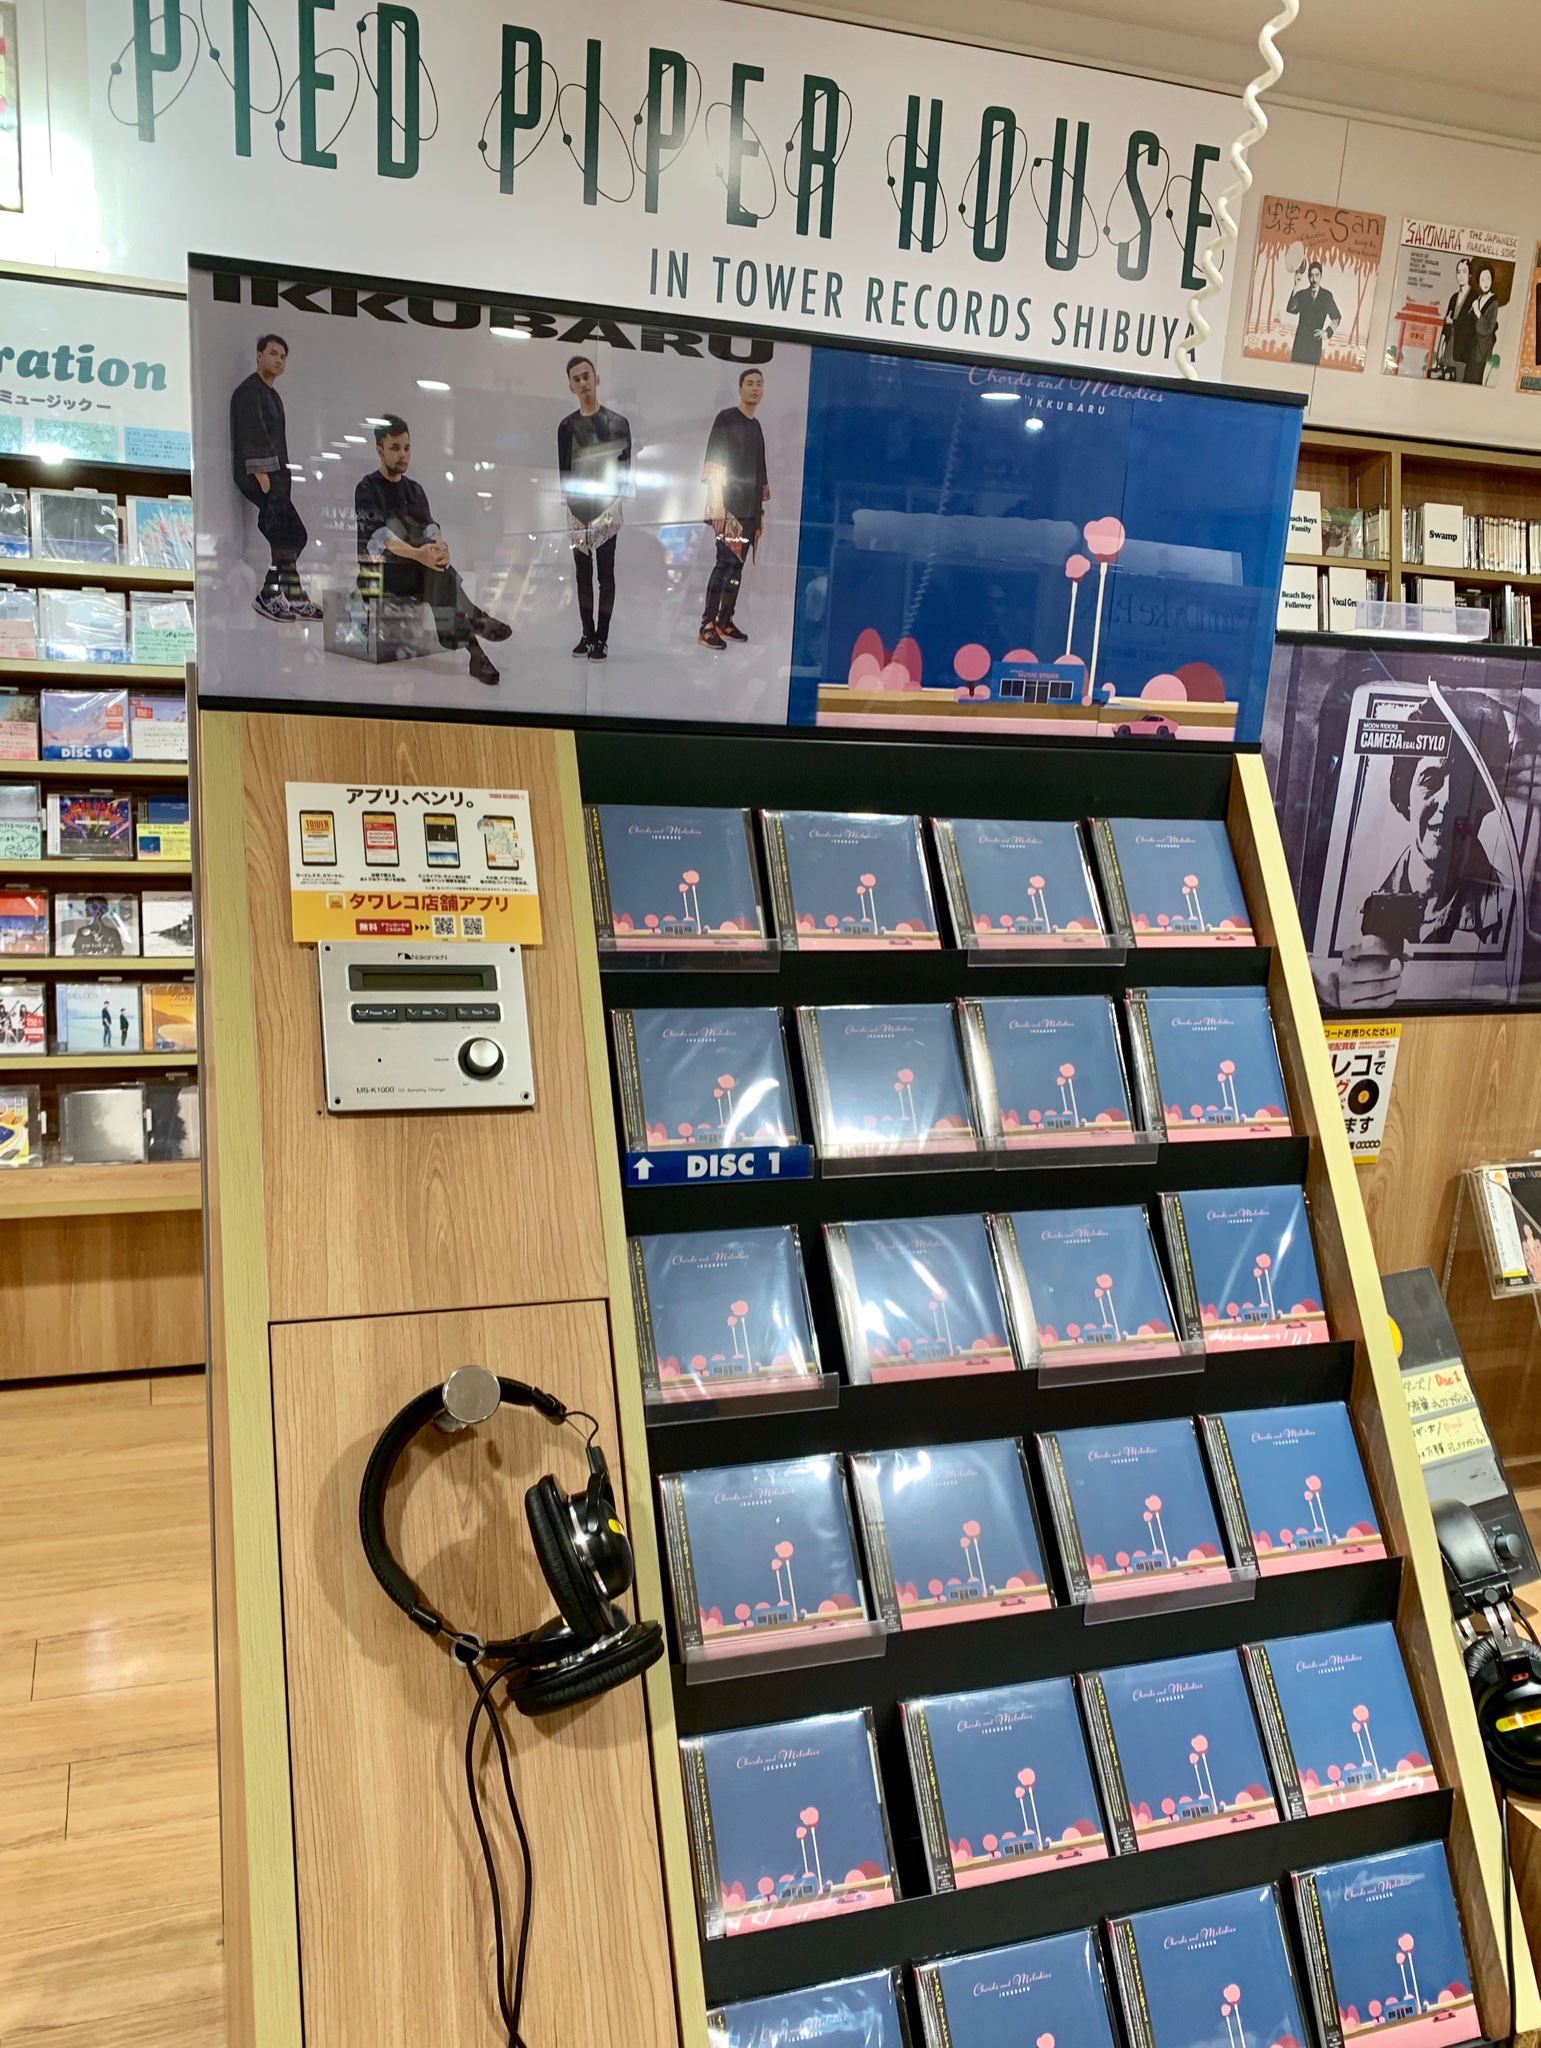 Tower-Records-Shibuya---Pied-Piper-House